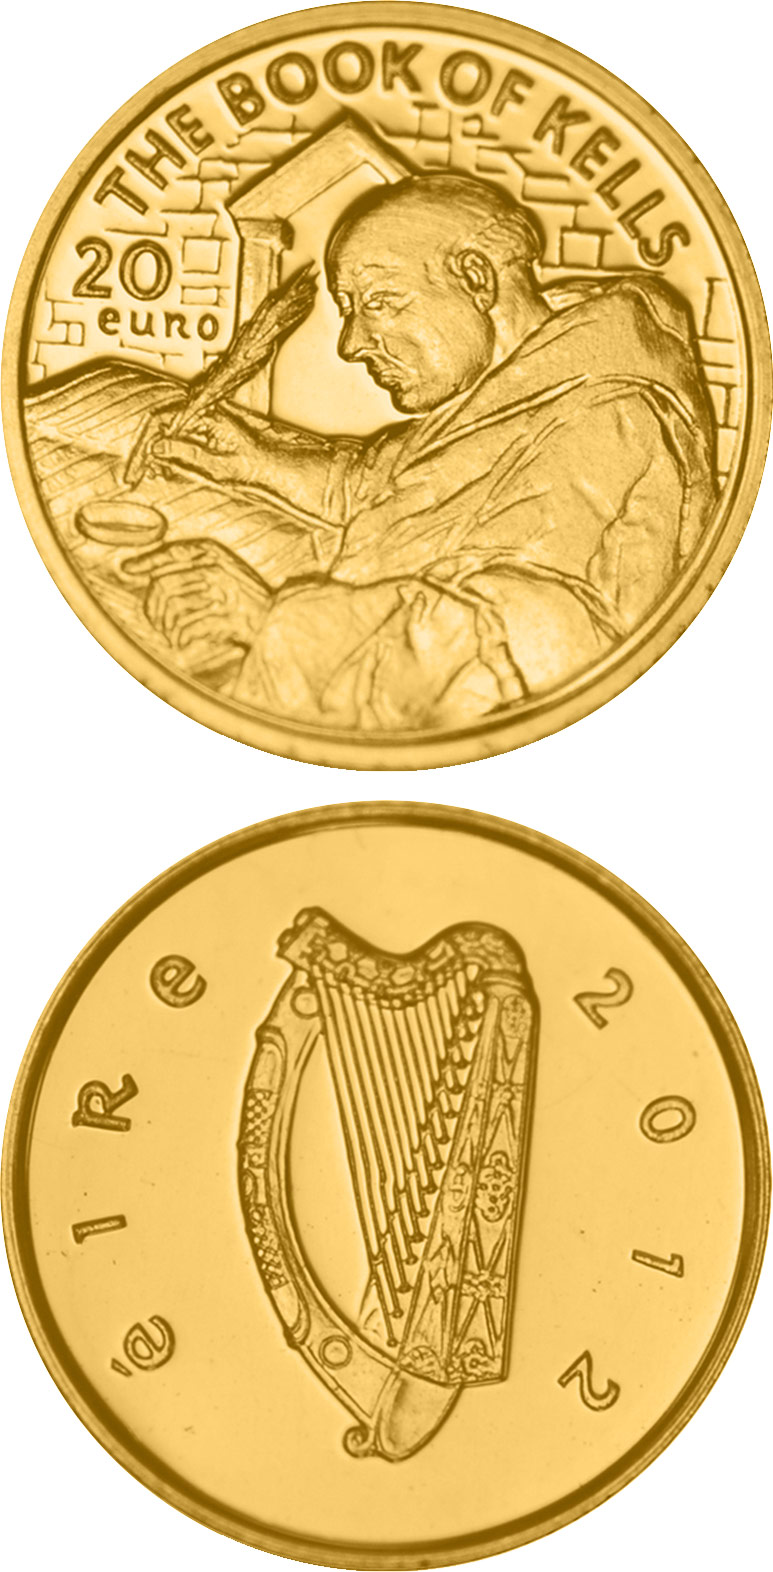 Image of 20 euro coin - Book of Kells | Ireland 2012.  The Gold coin is of Proof quality.